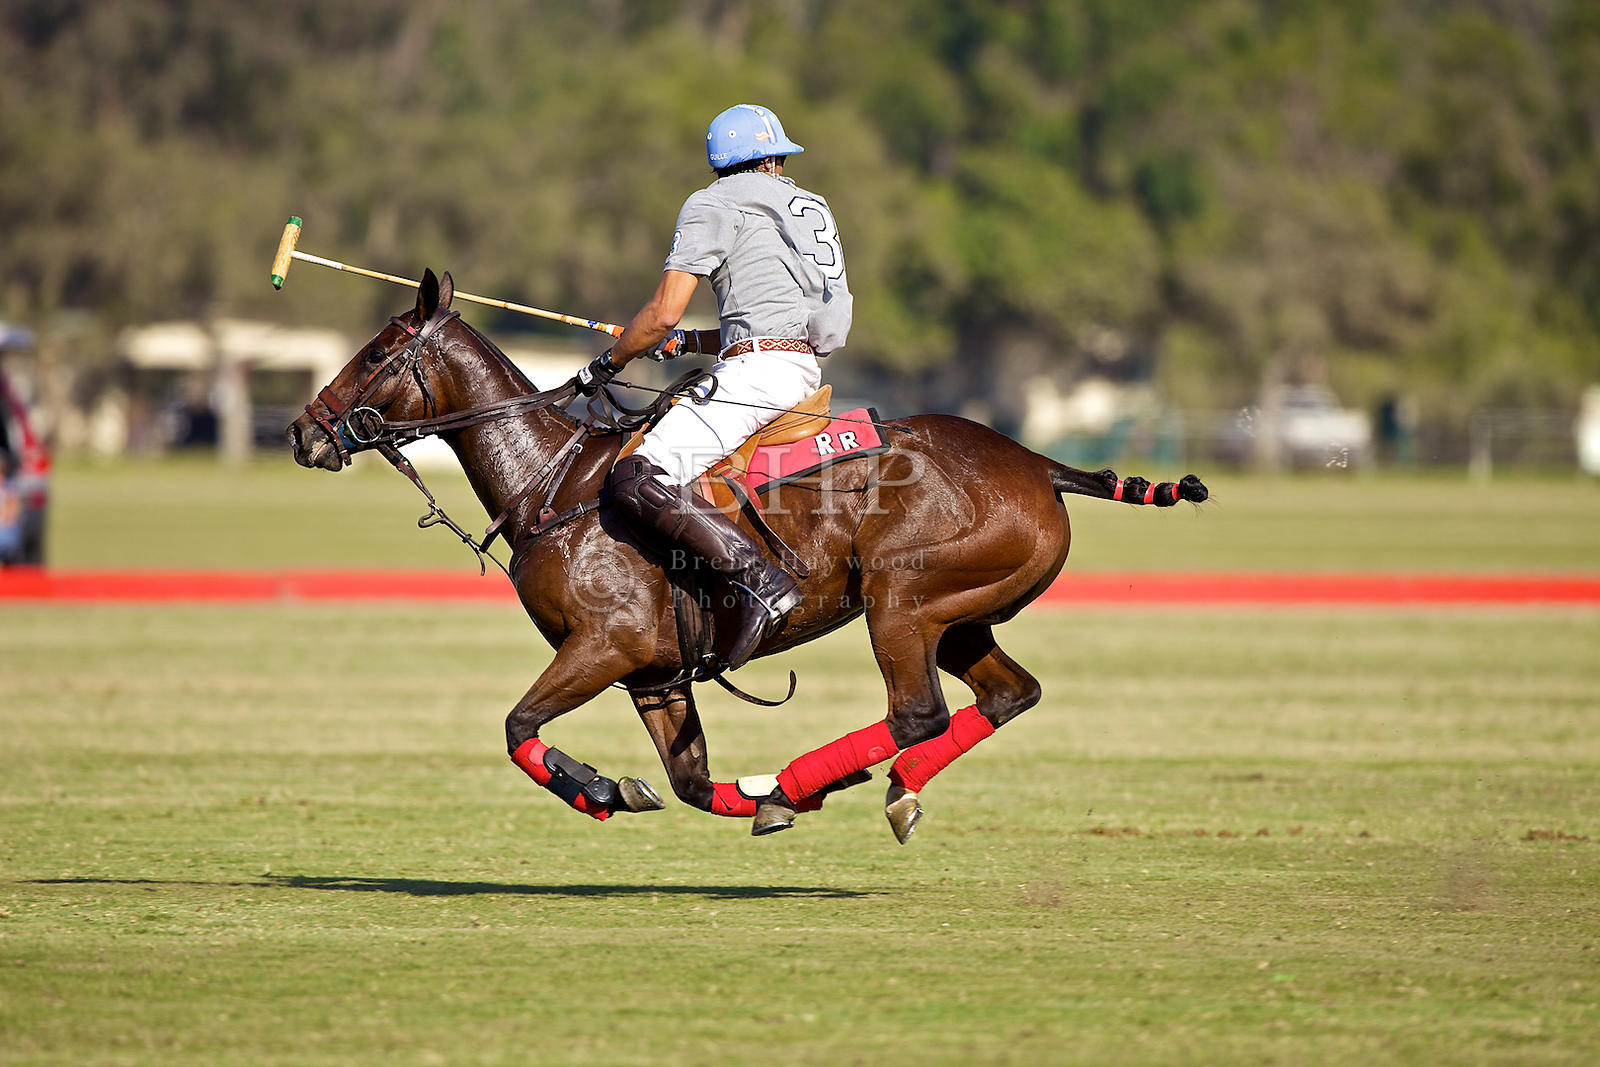 action sports photographer polo diego san examples haywood brent